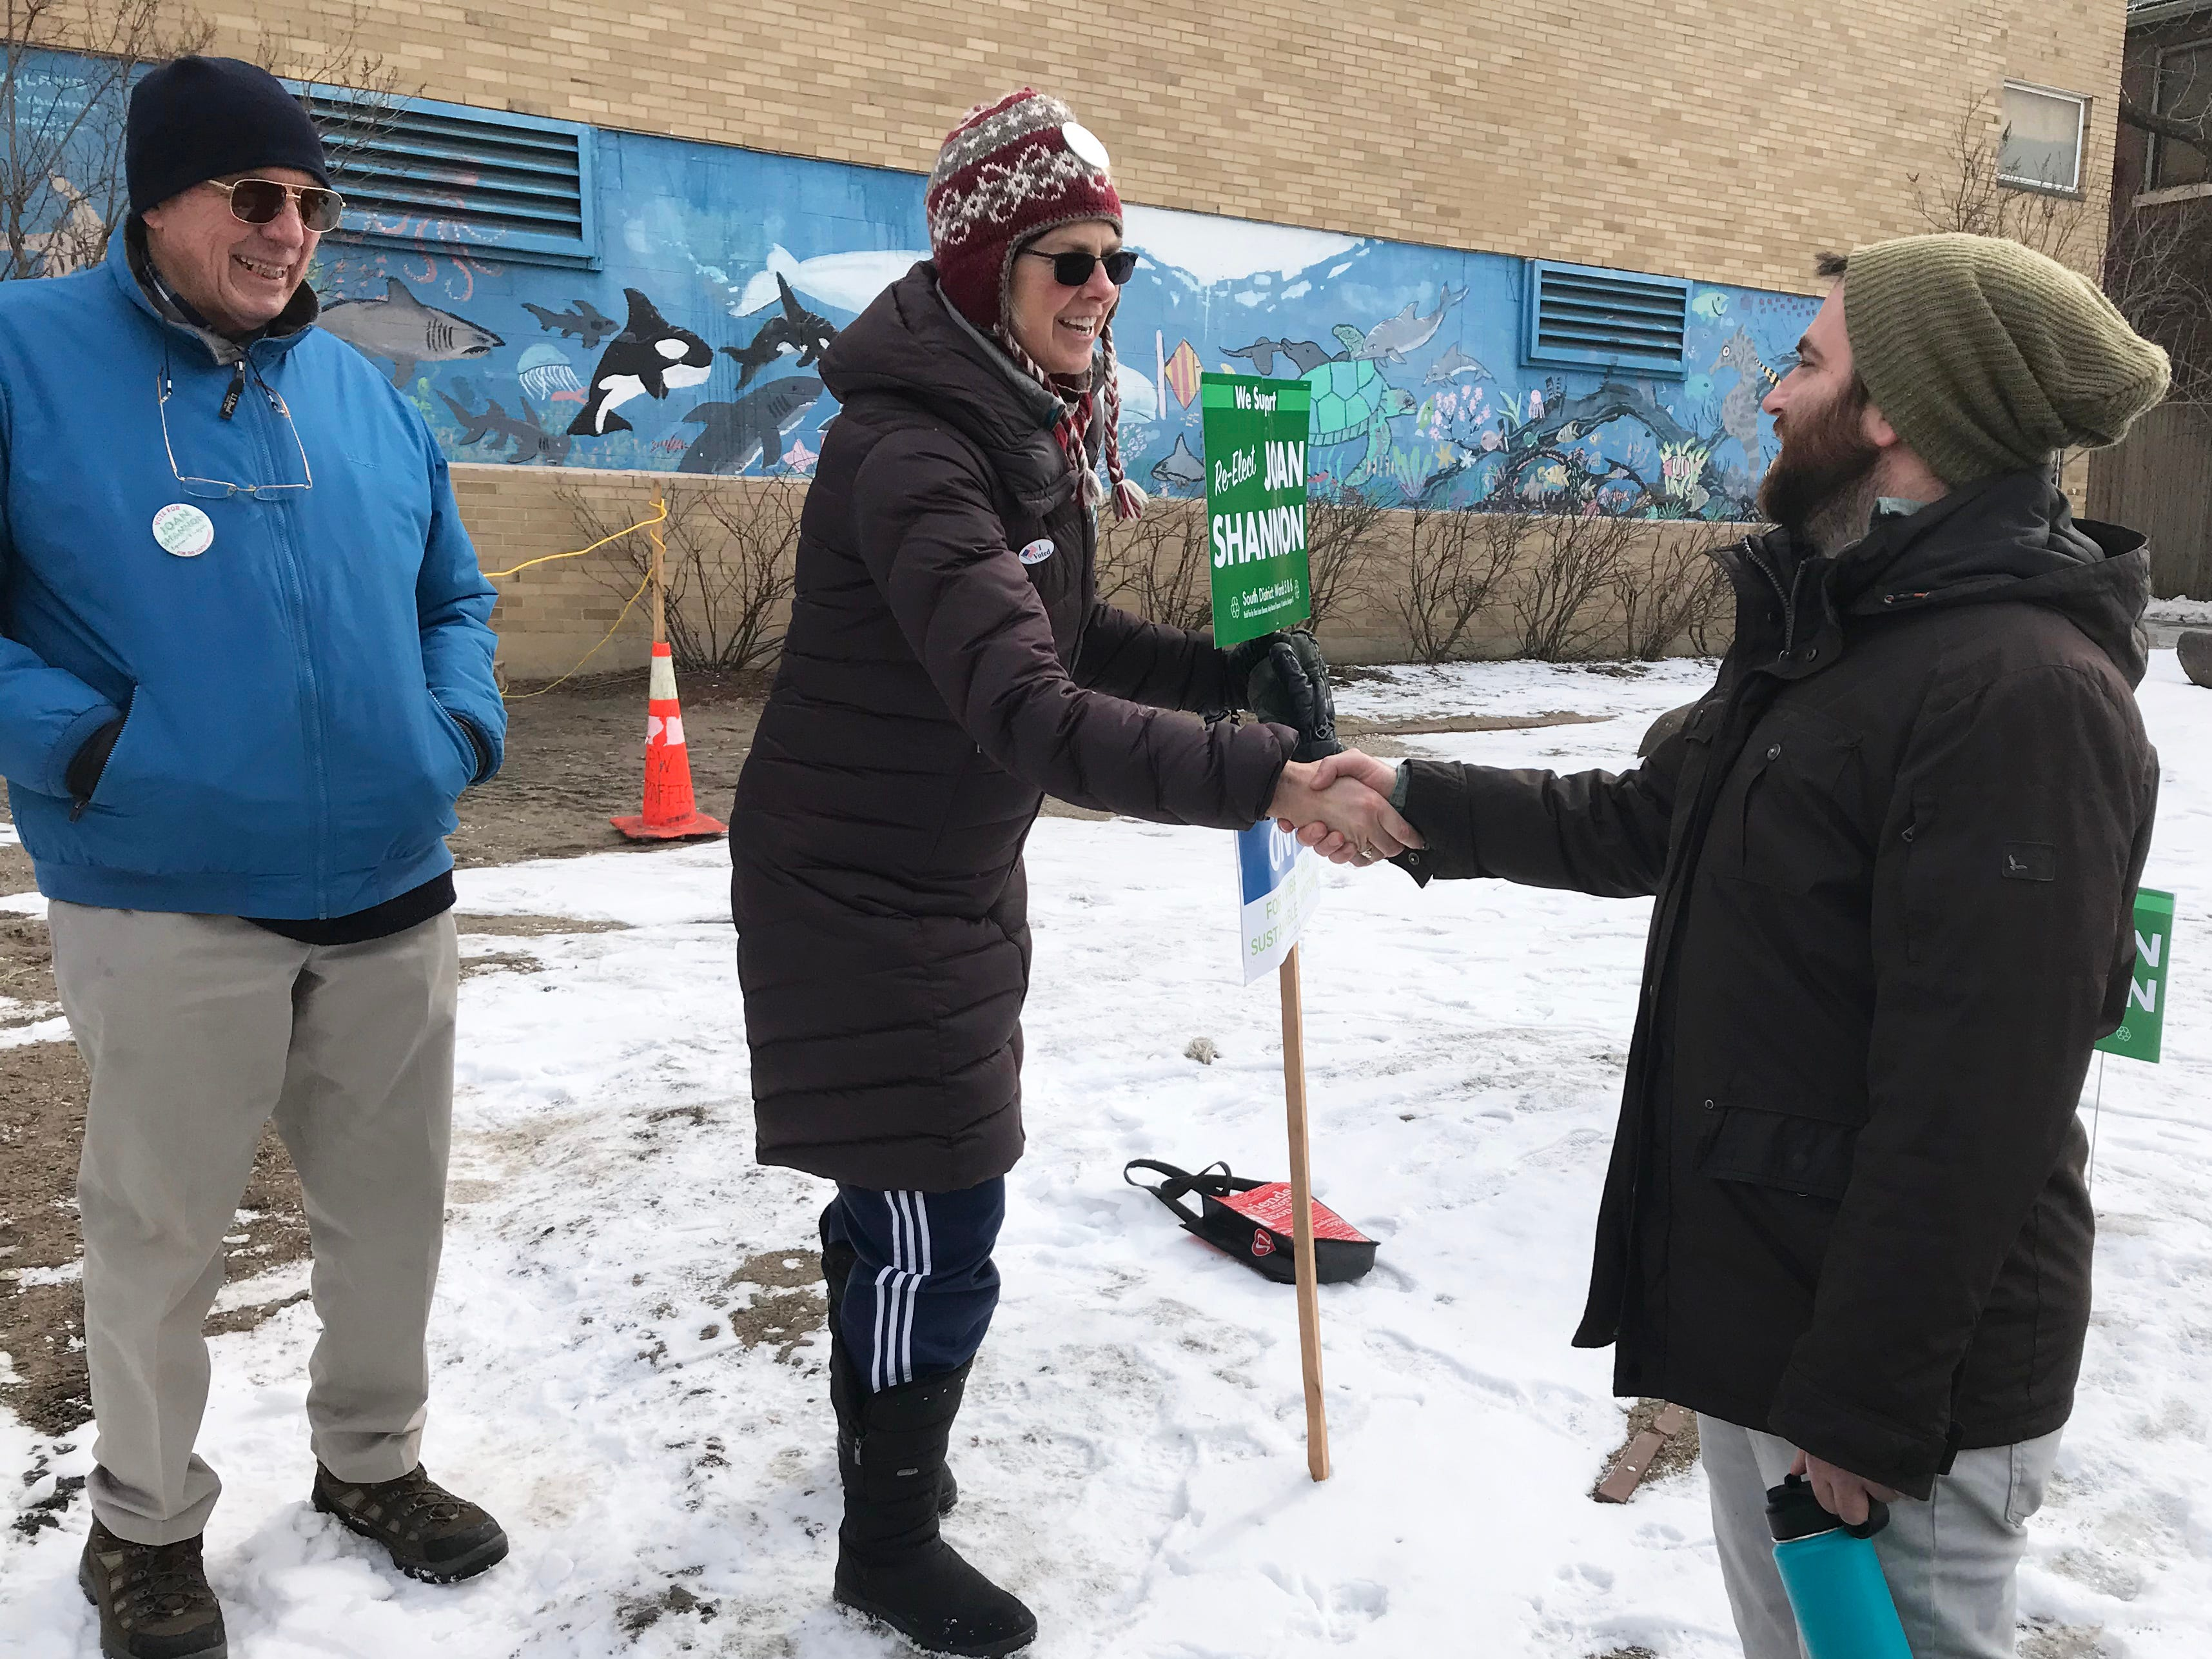 Joan Shannon, center, the incumbent candidate for Burlington CIty Council, South District, greets resident Kasey Child outside Edmunds Middle School on March 5, 2019. Pat Robbins, at left, joined Shannon at the polls.